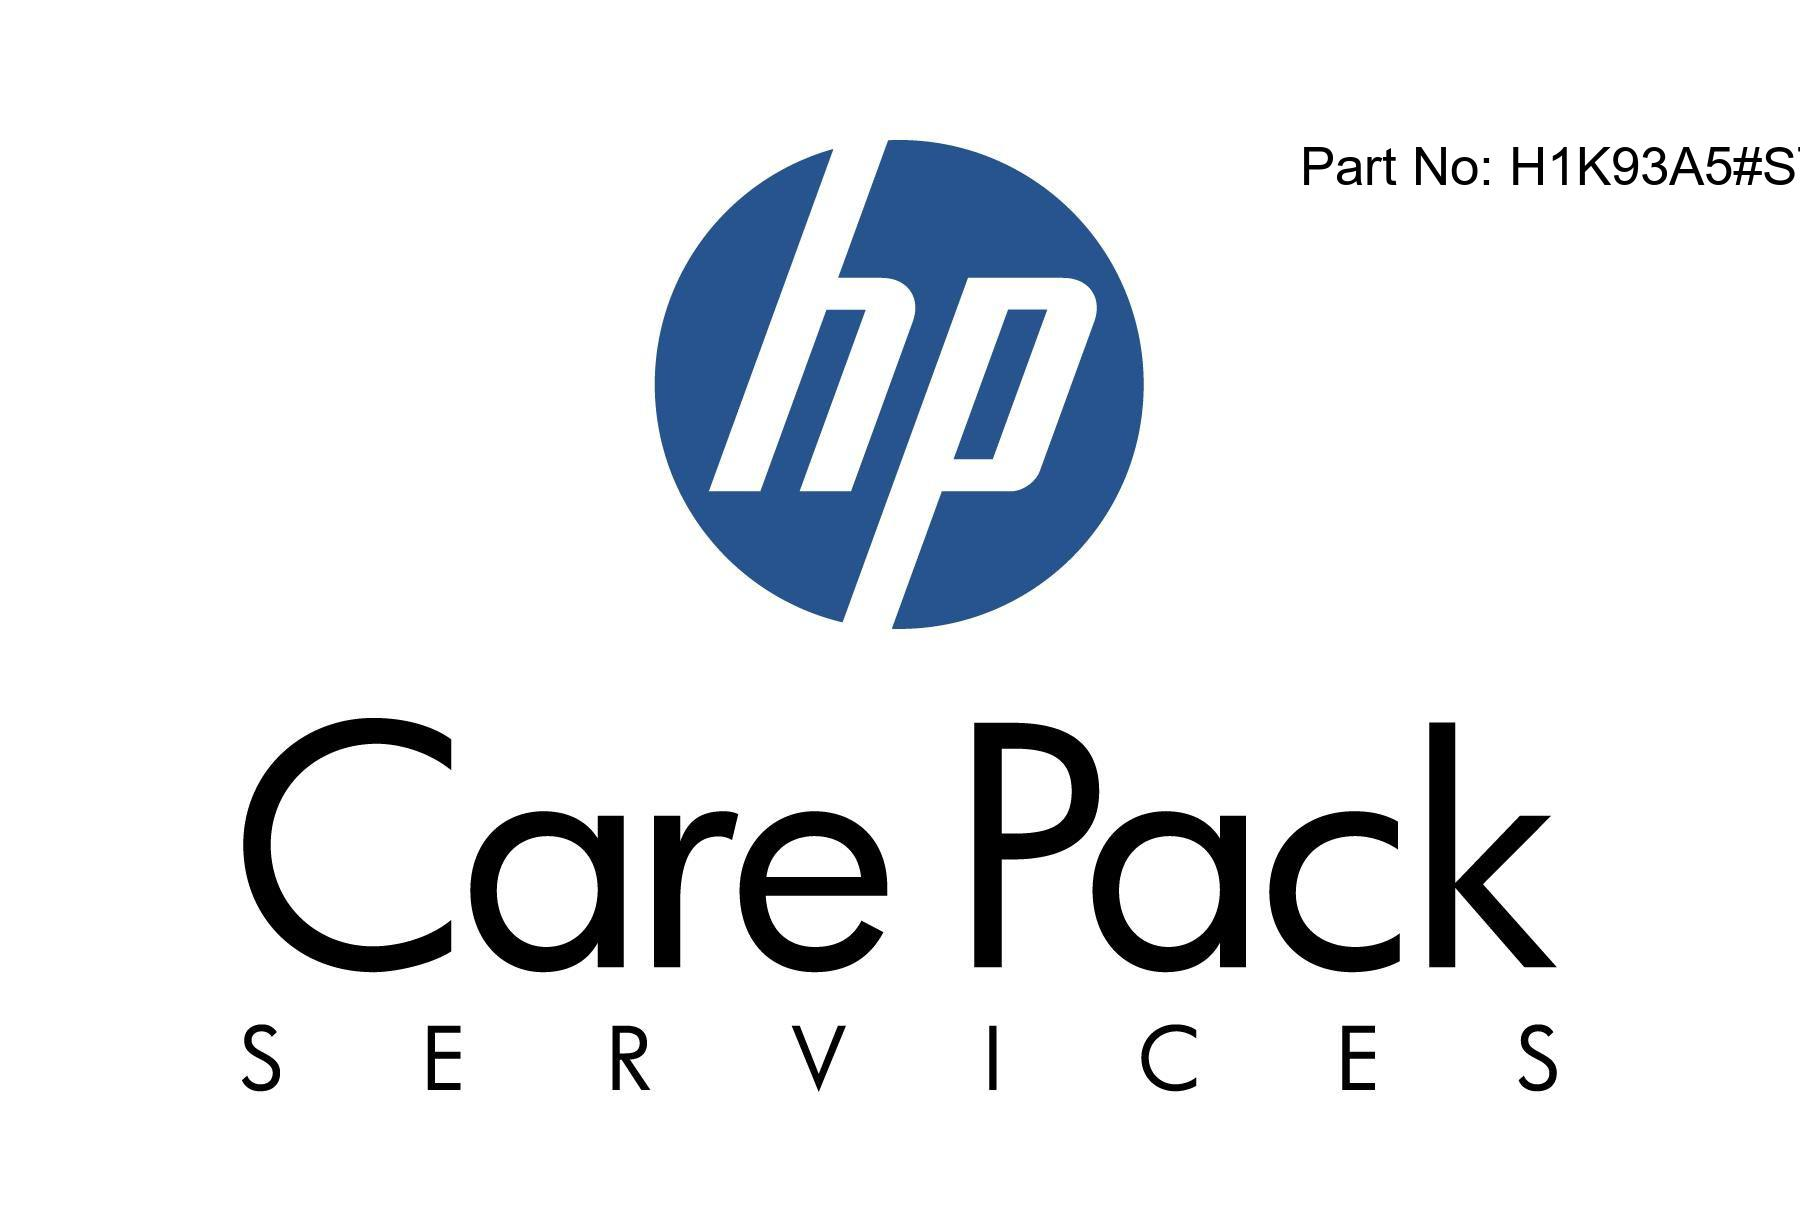 Proactive Care 24x7 Software Service with Defective Media Retention - Technical support - for HPE StoreVirtual VSA Software 2014 - 10 TB capacity - phone consulting - 5 years - 24x7 - response time: 2 h